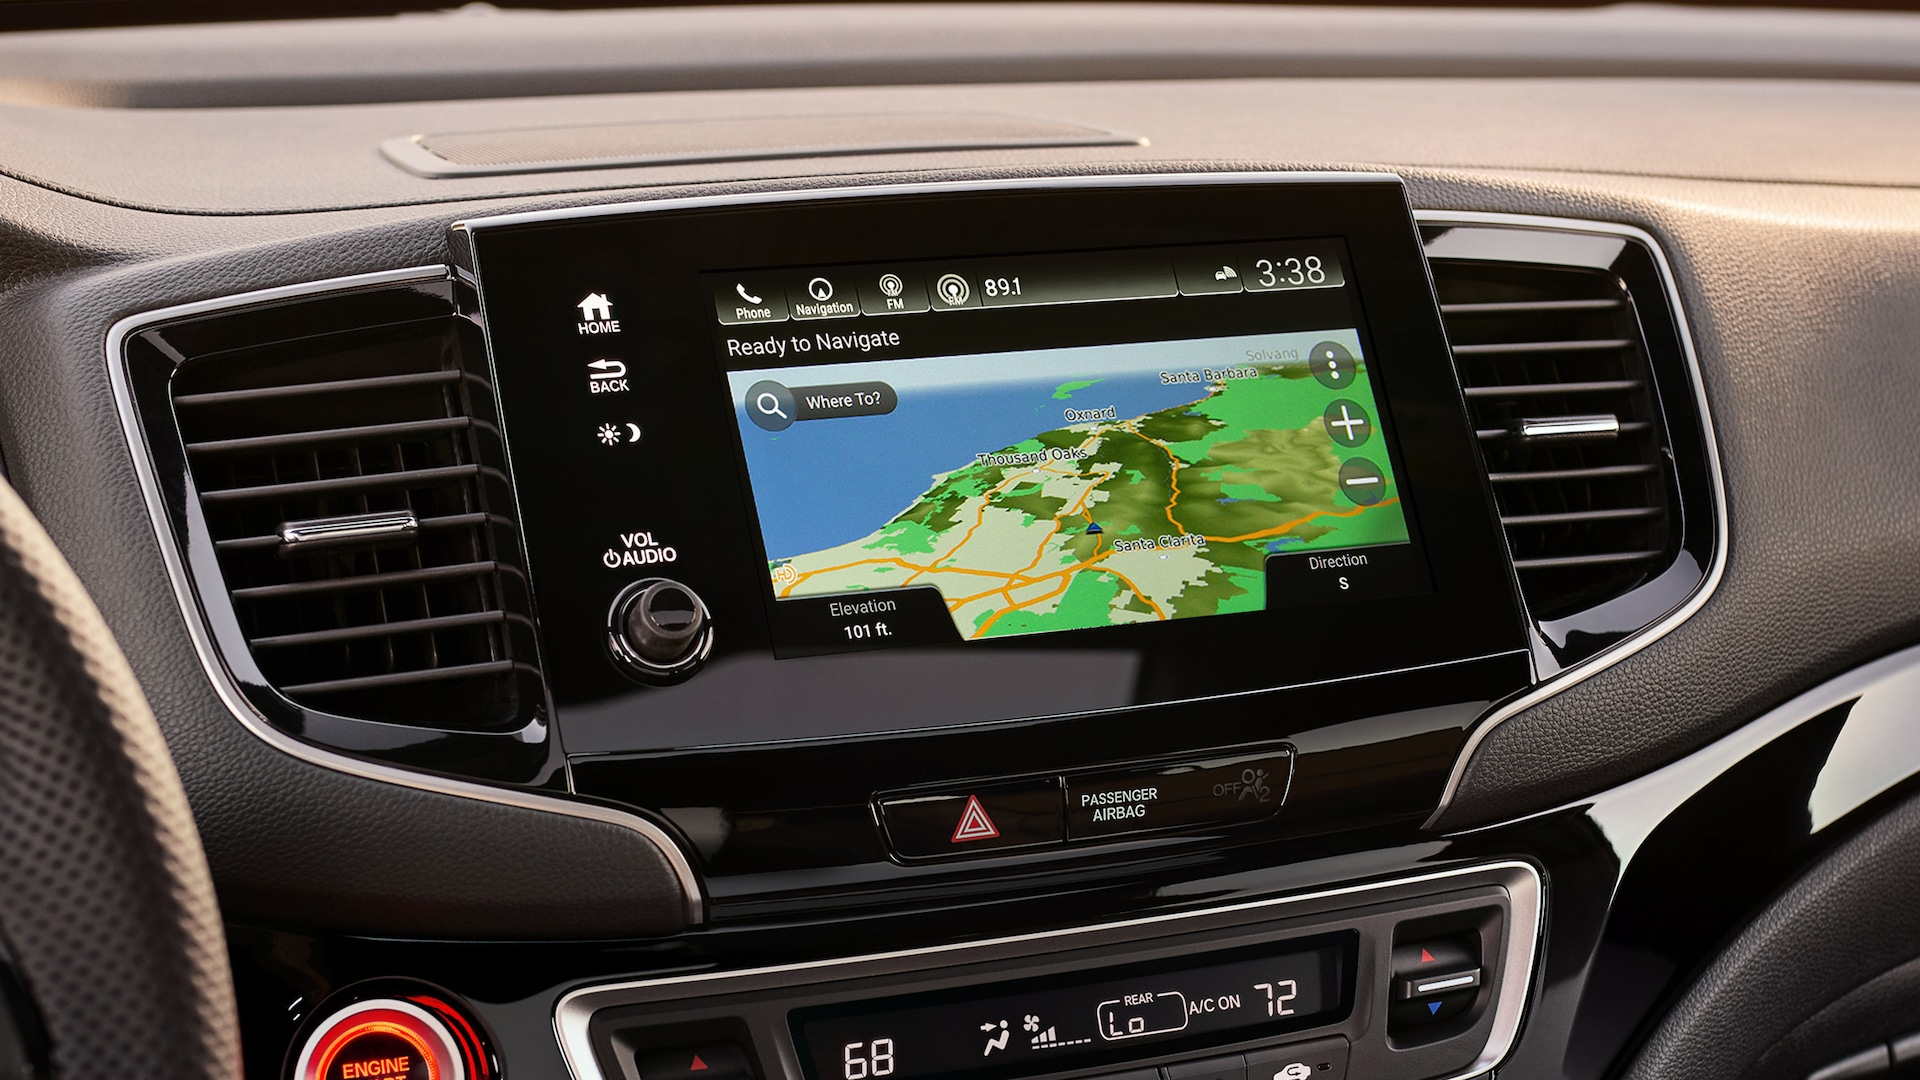 2020 Honda Passport featuring the Honda Satellite-Linked Navigation System™ touch-screen.